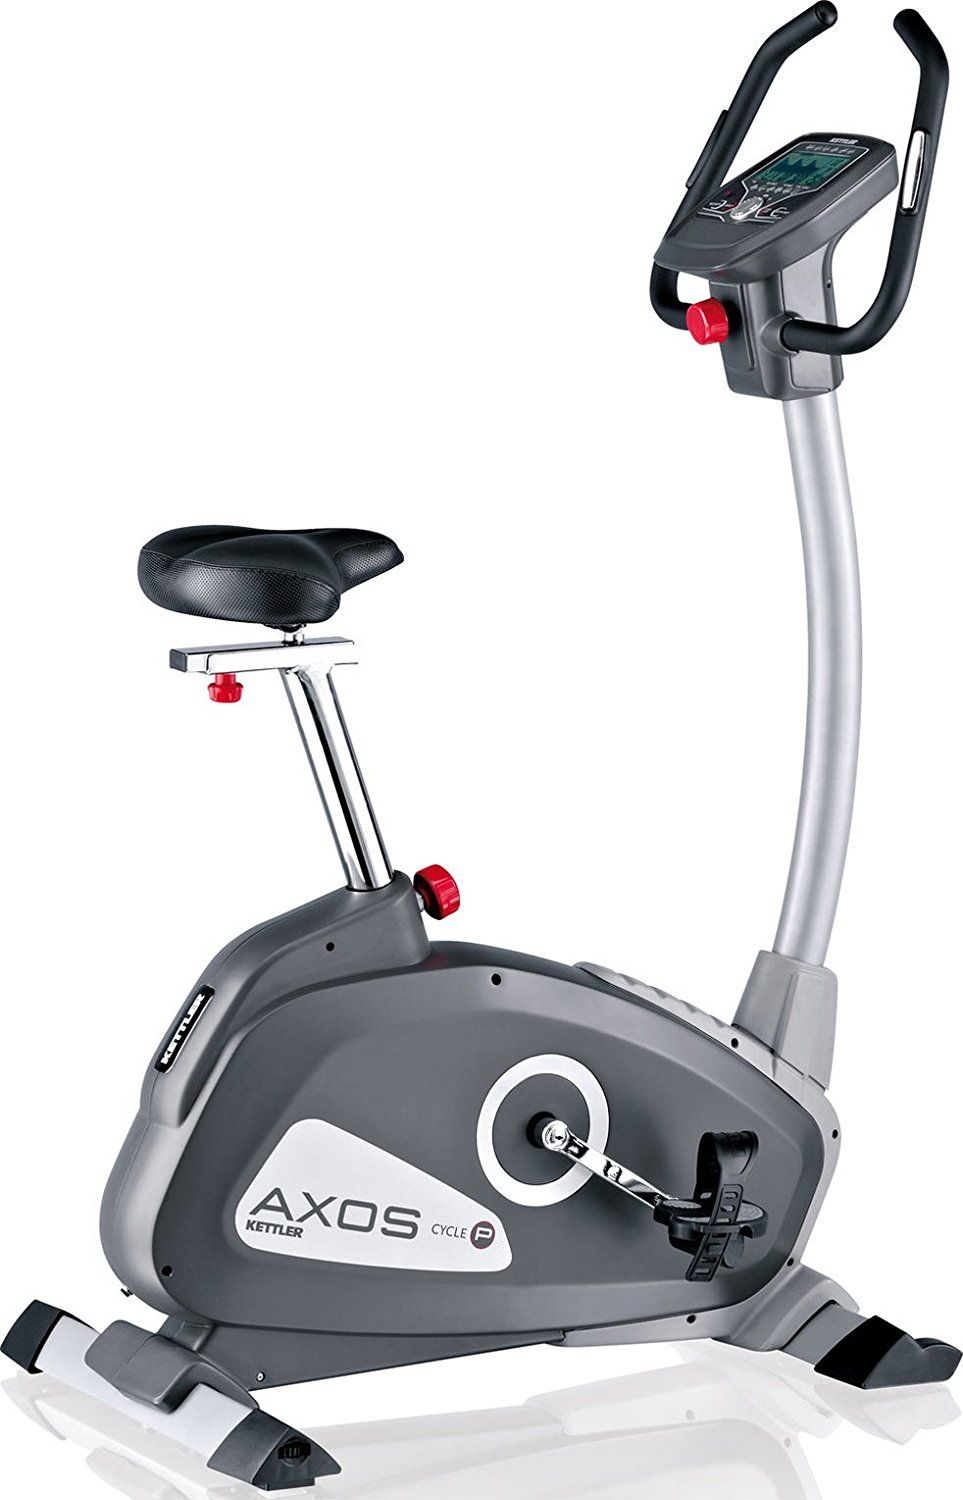 Kettler Fitness Kettler Axos Cycle P Upright Exercise Bike Review Bike Upright